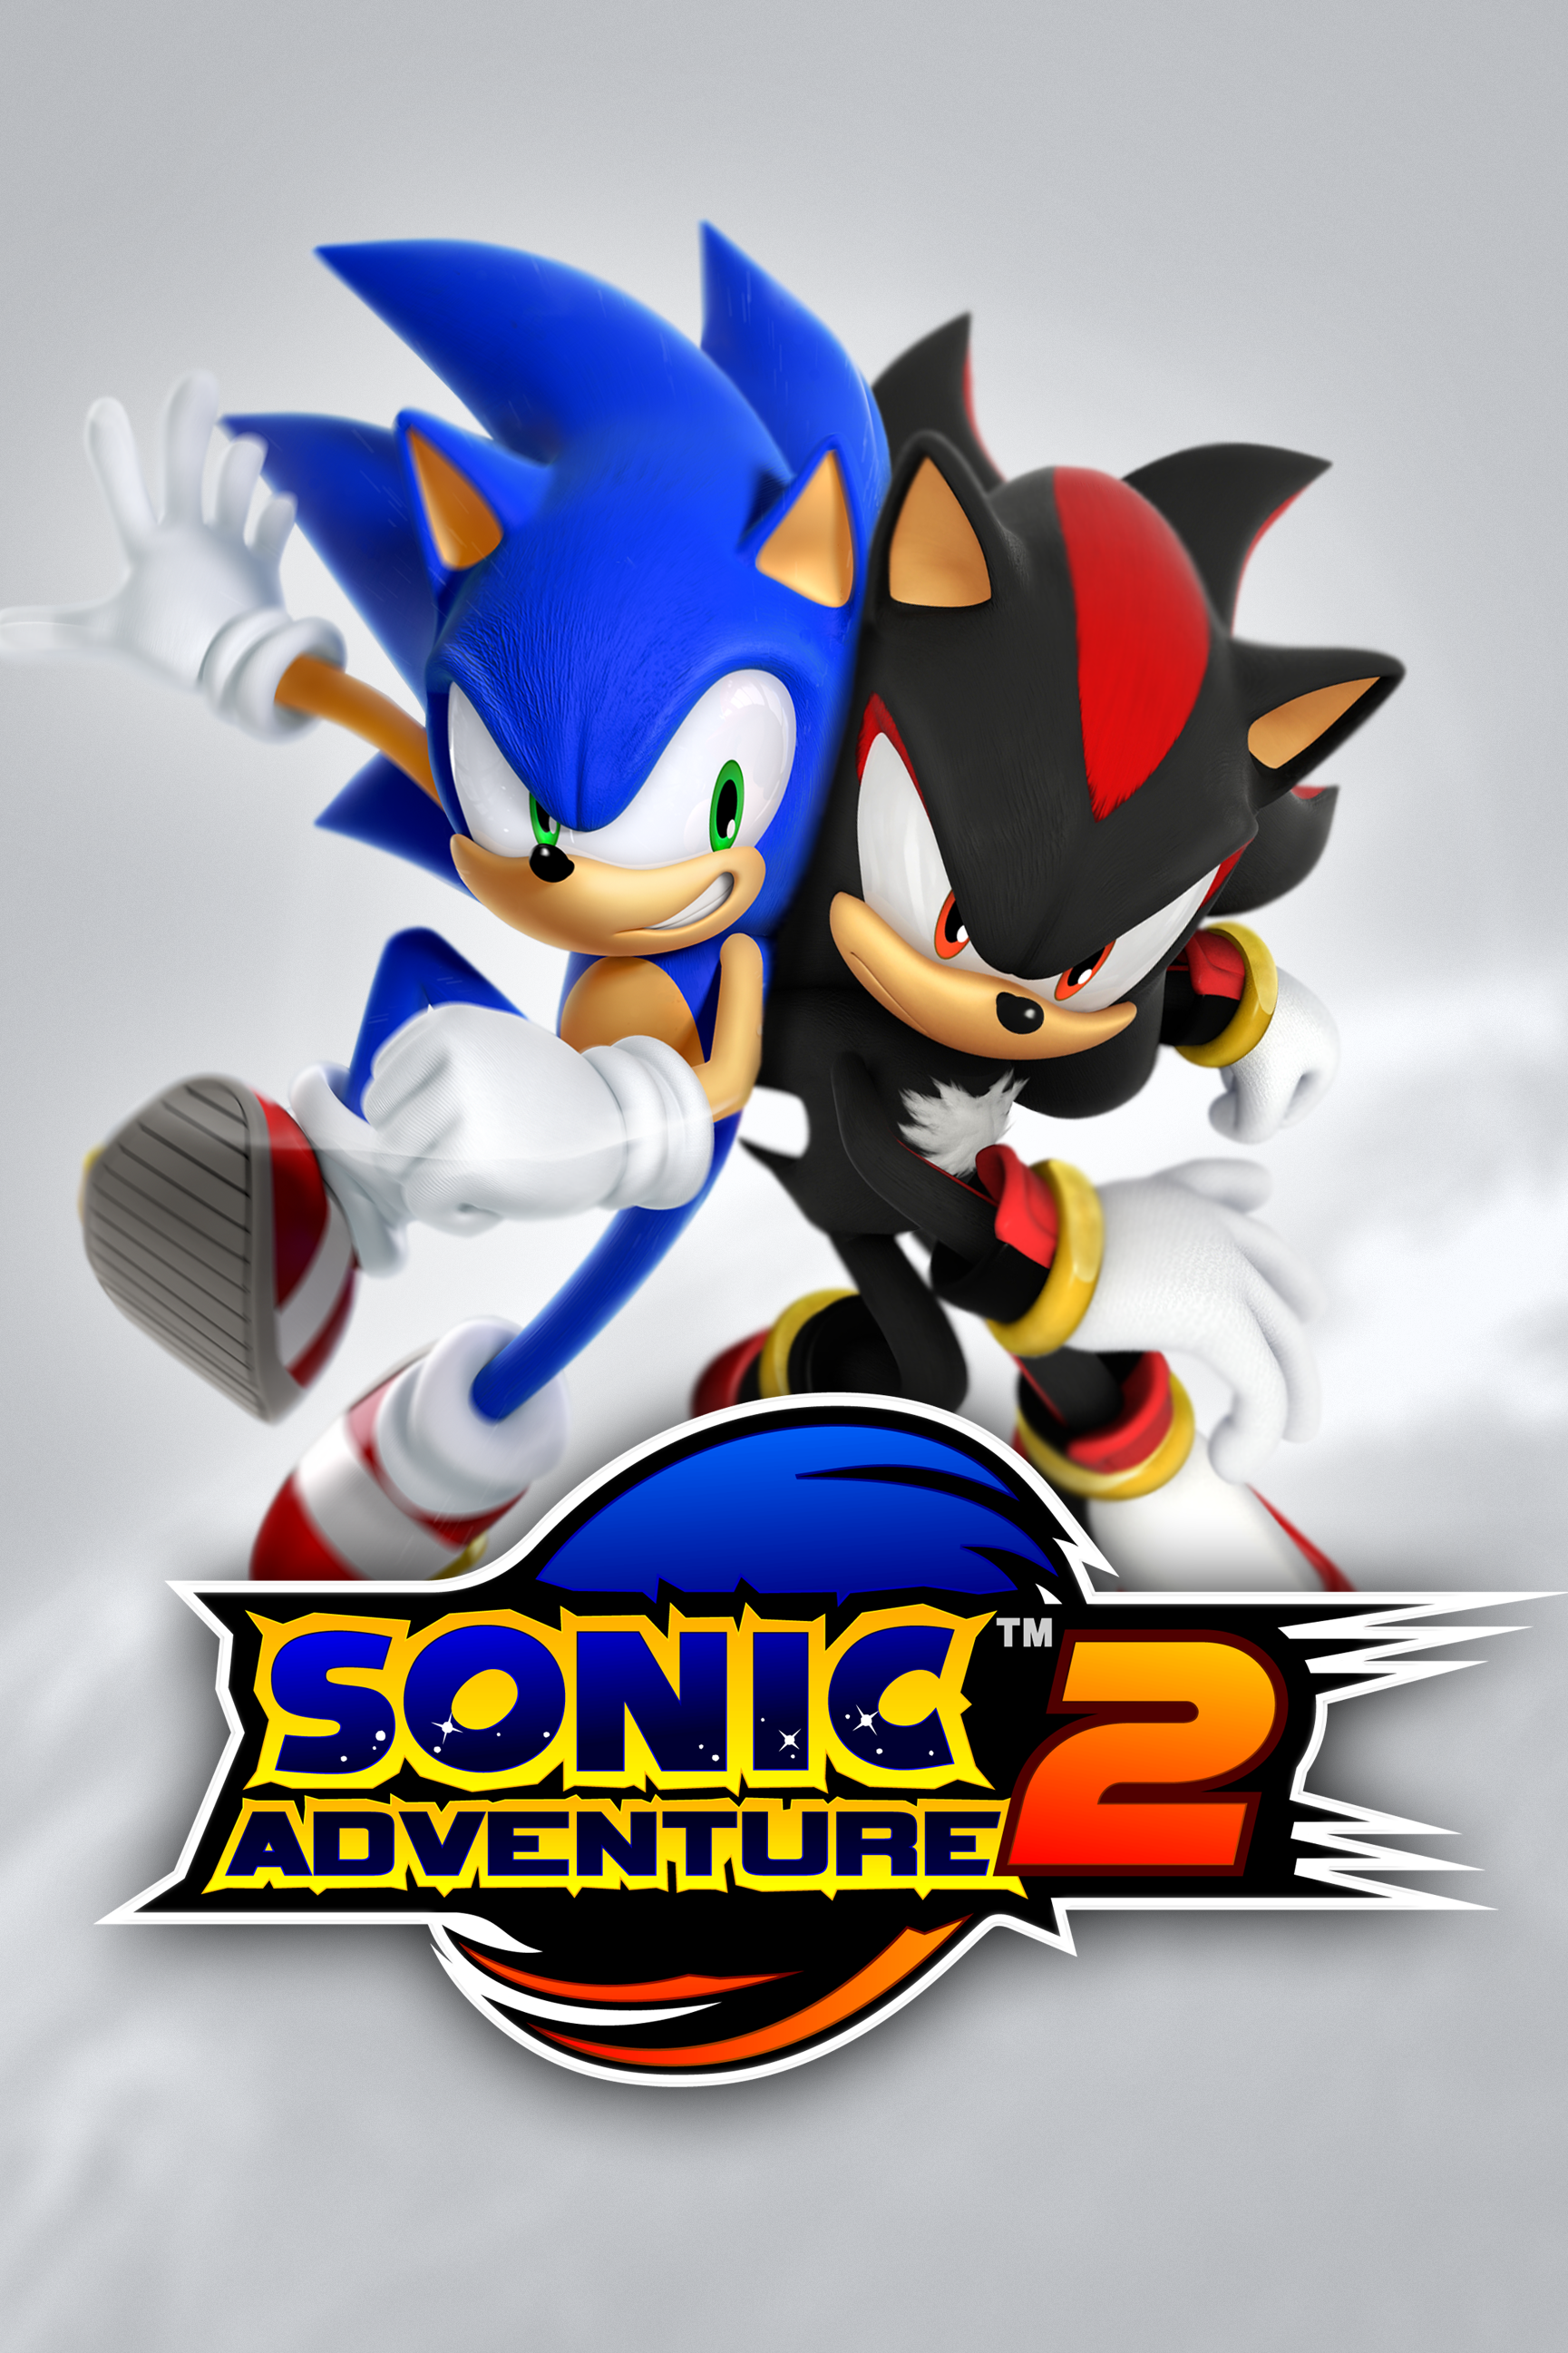 Sonic adventure 2 remastered sonic bayonetta pok mon - Jeux de sonic vs shadow ...